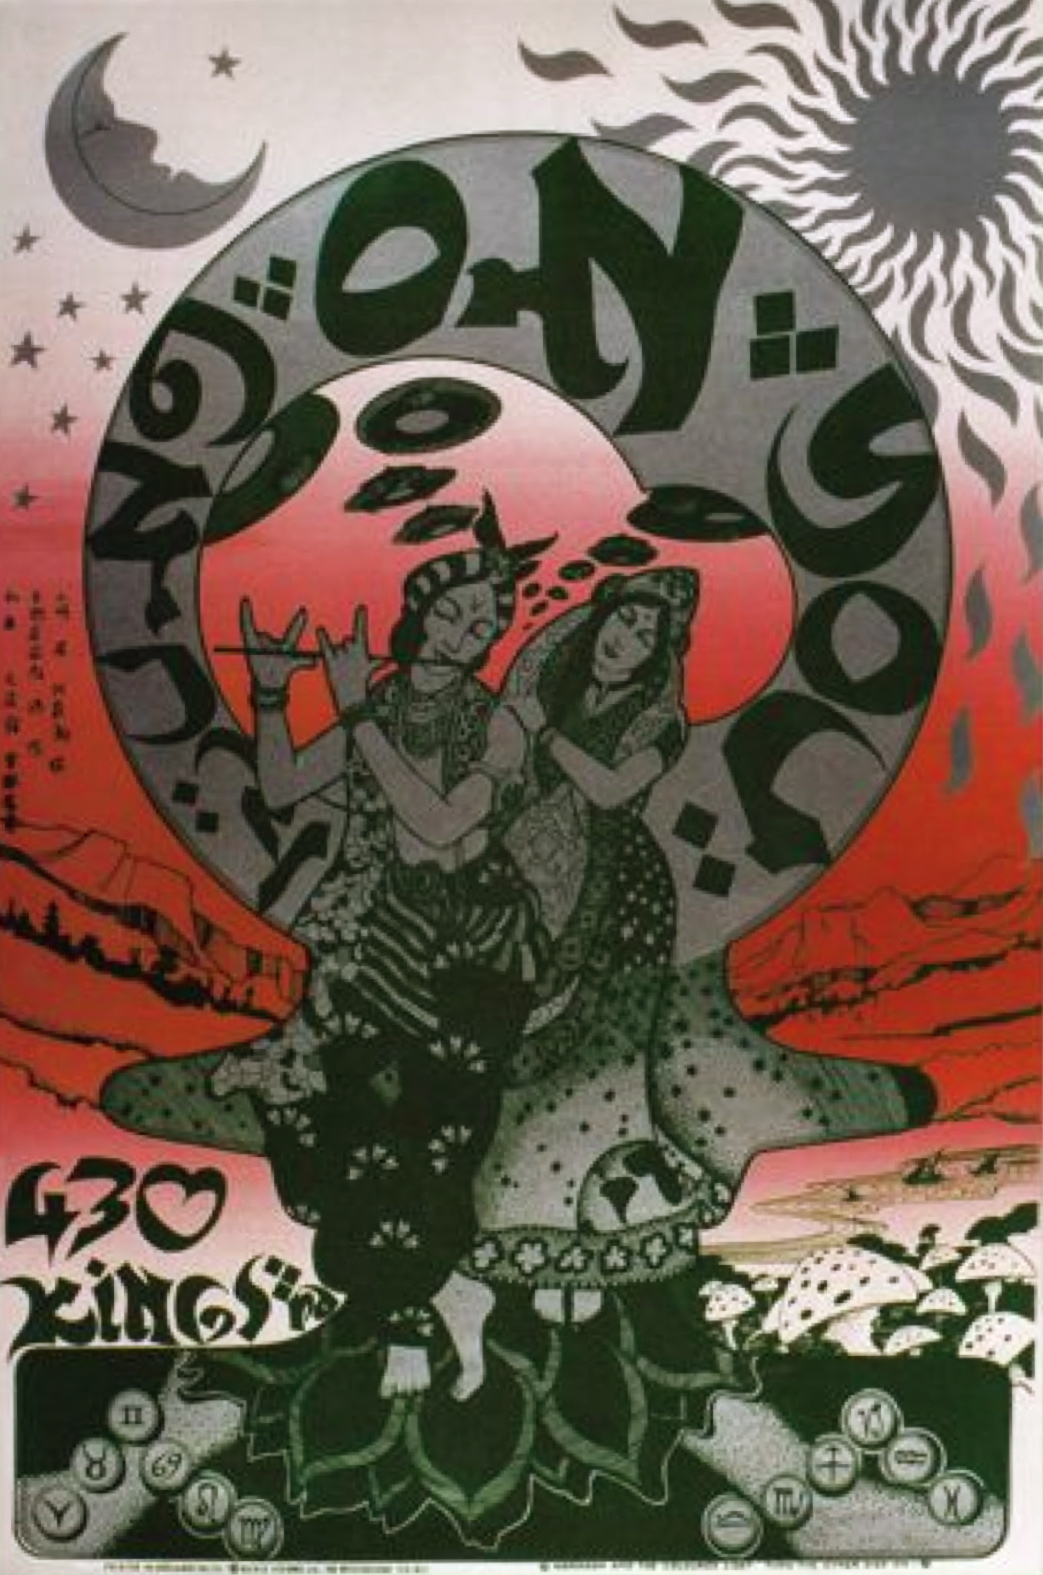 The Crazy World Of Arthur Brown Fire The Crazy World Of Arthur Brown